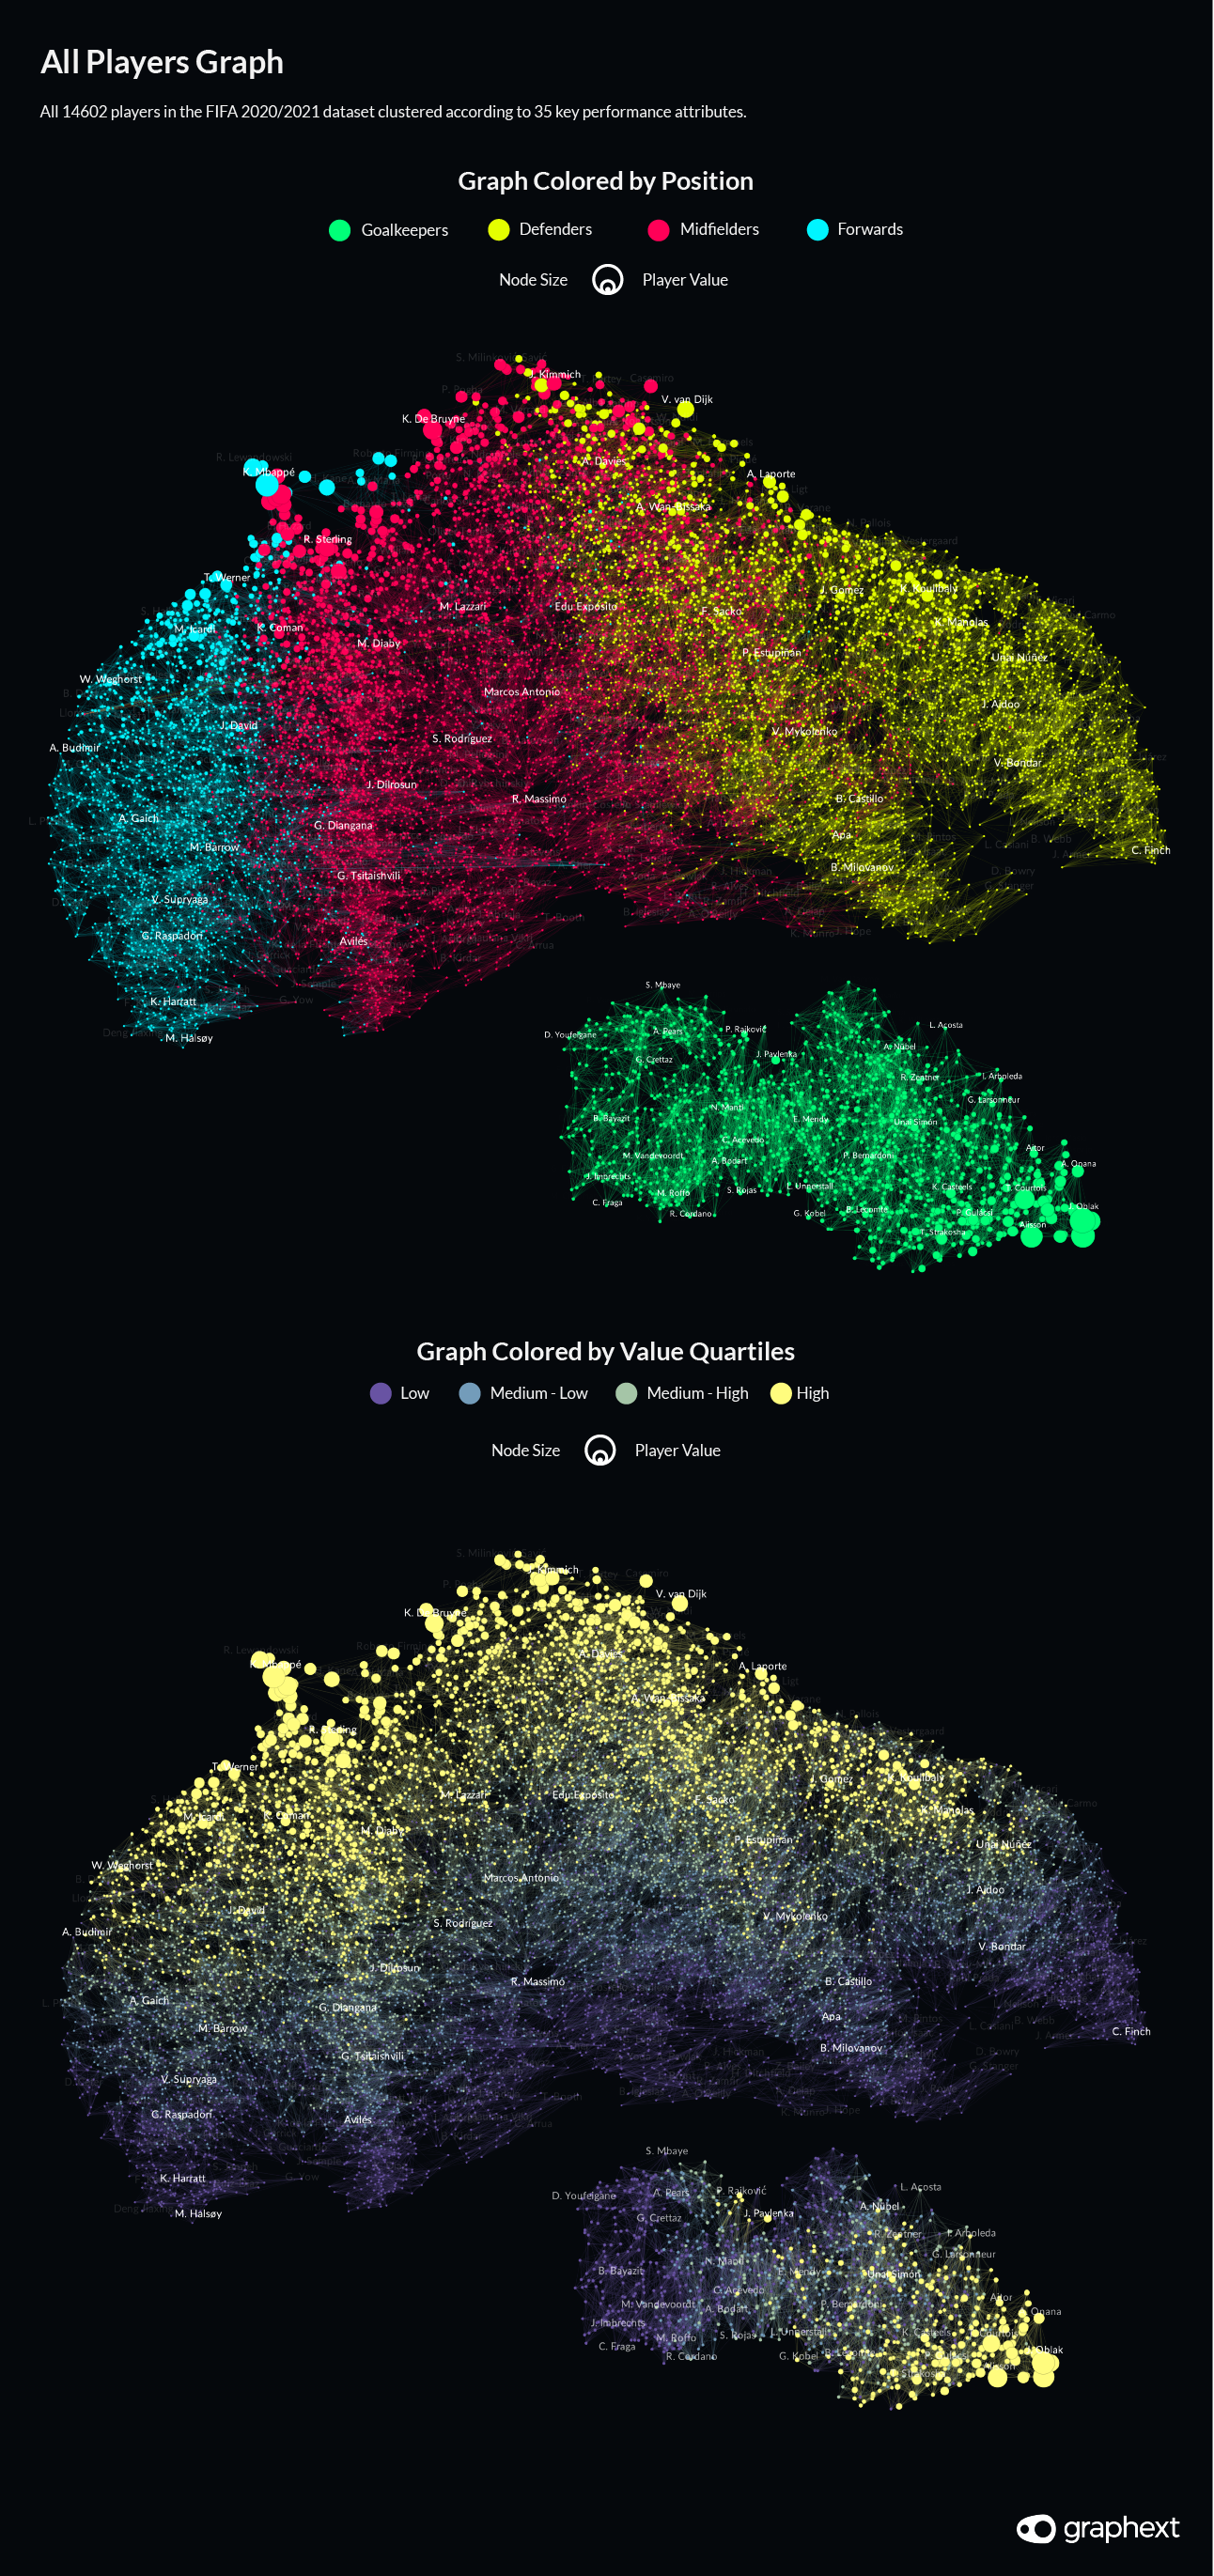 Network visualisations showing how our clustering analysis grouped football players according to their value and their position.